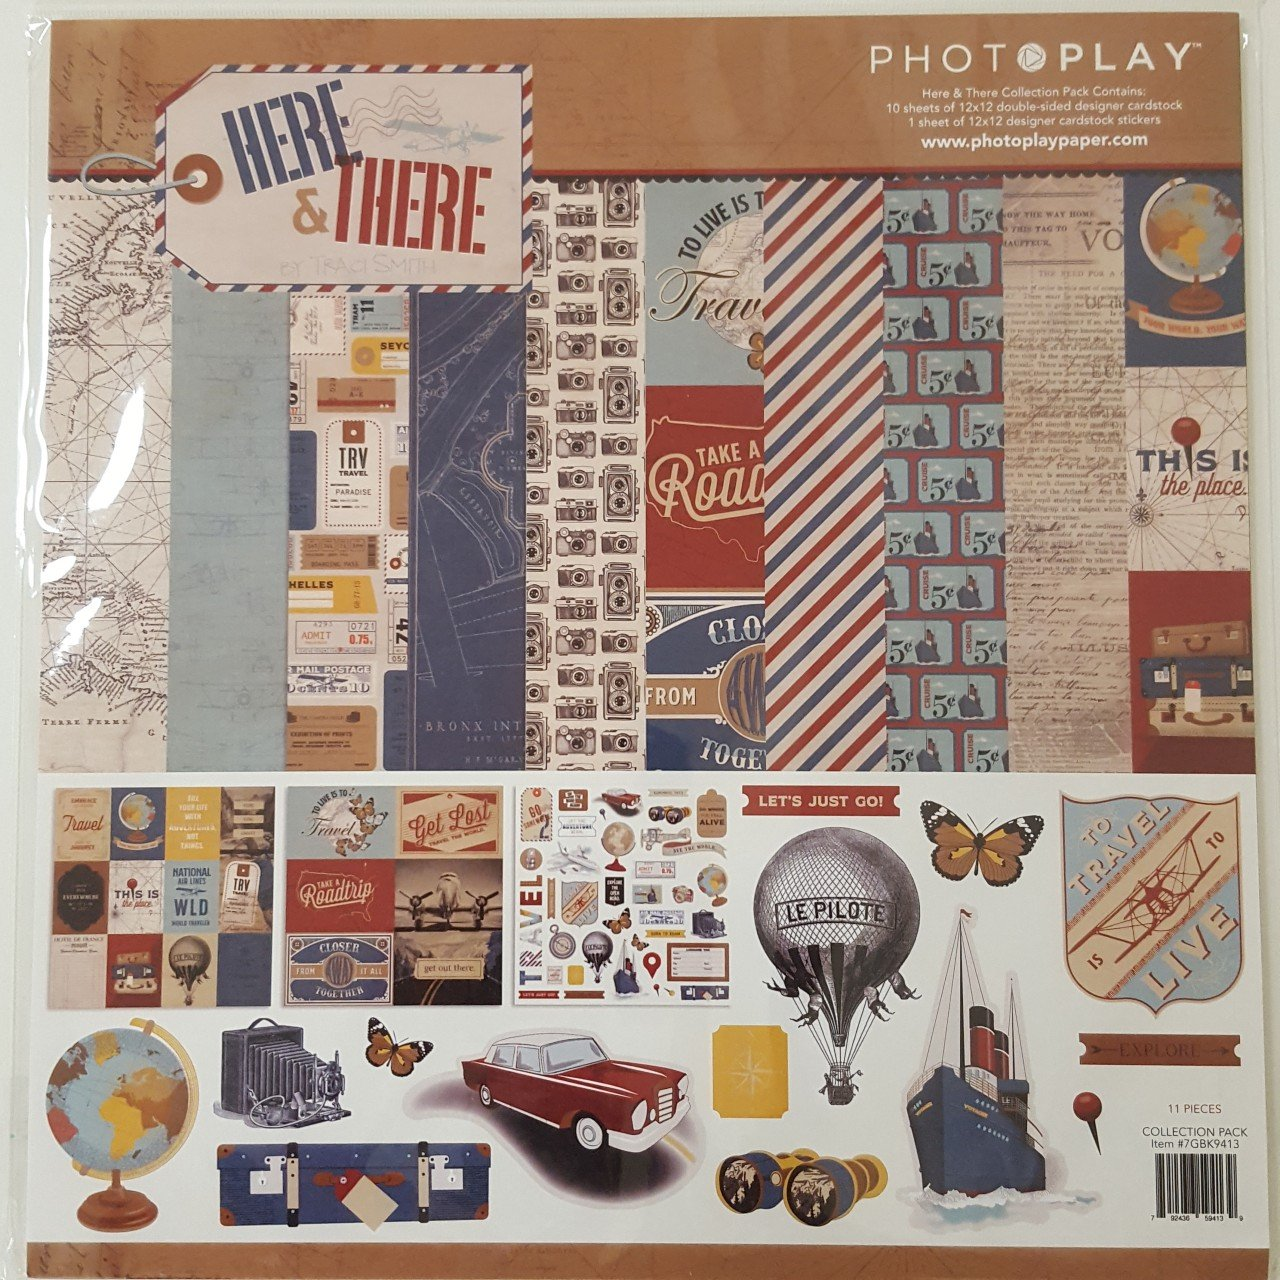 PhotoPlay Collection Pack 10 sheets 12X12-Here & There